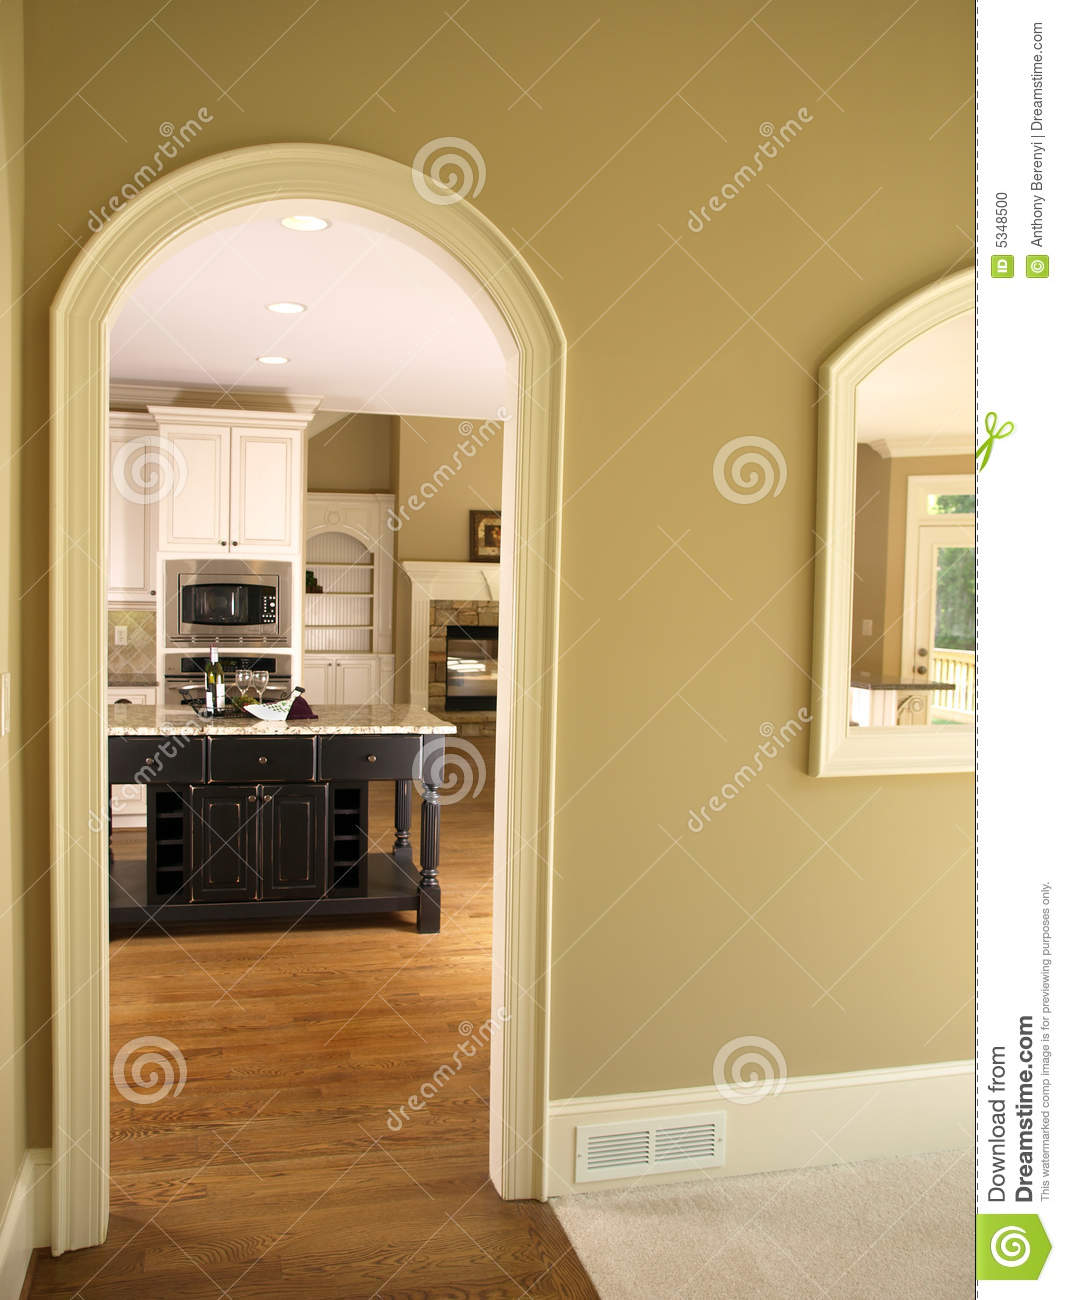 Kitchen Design Arch: Luxury Model Home Kitchen Arch Door Stock Photo